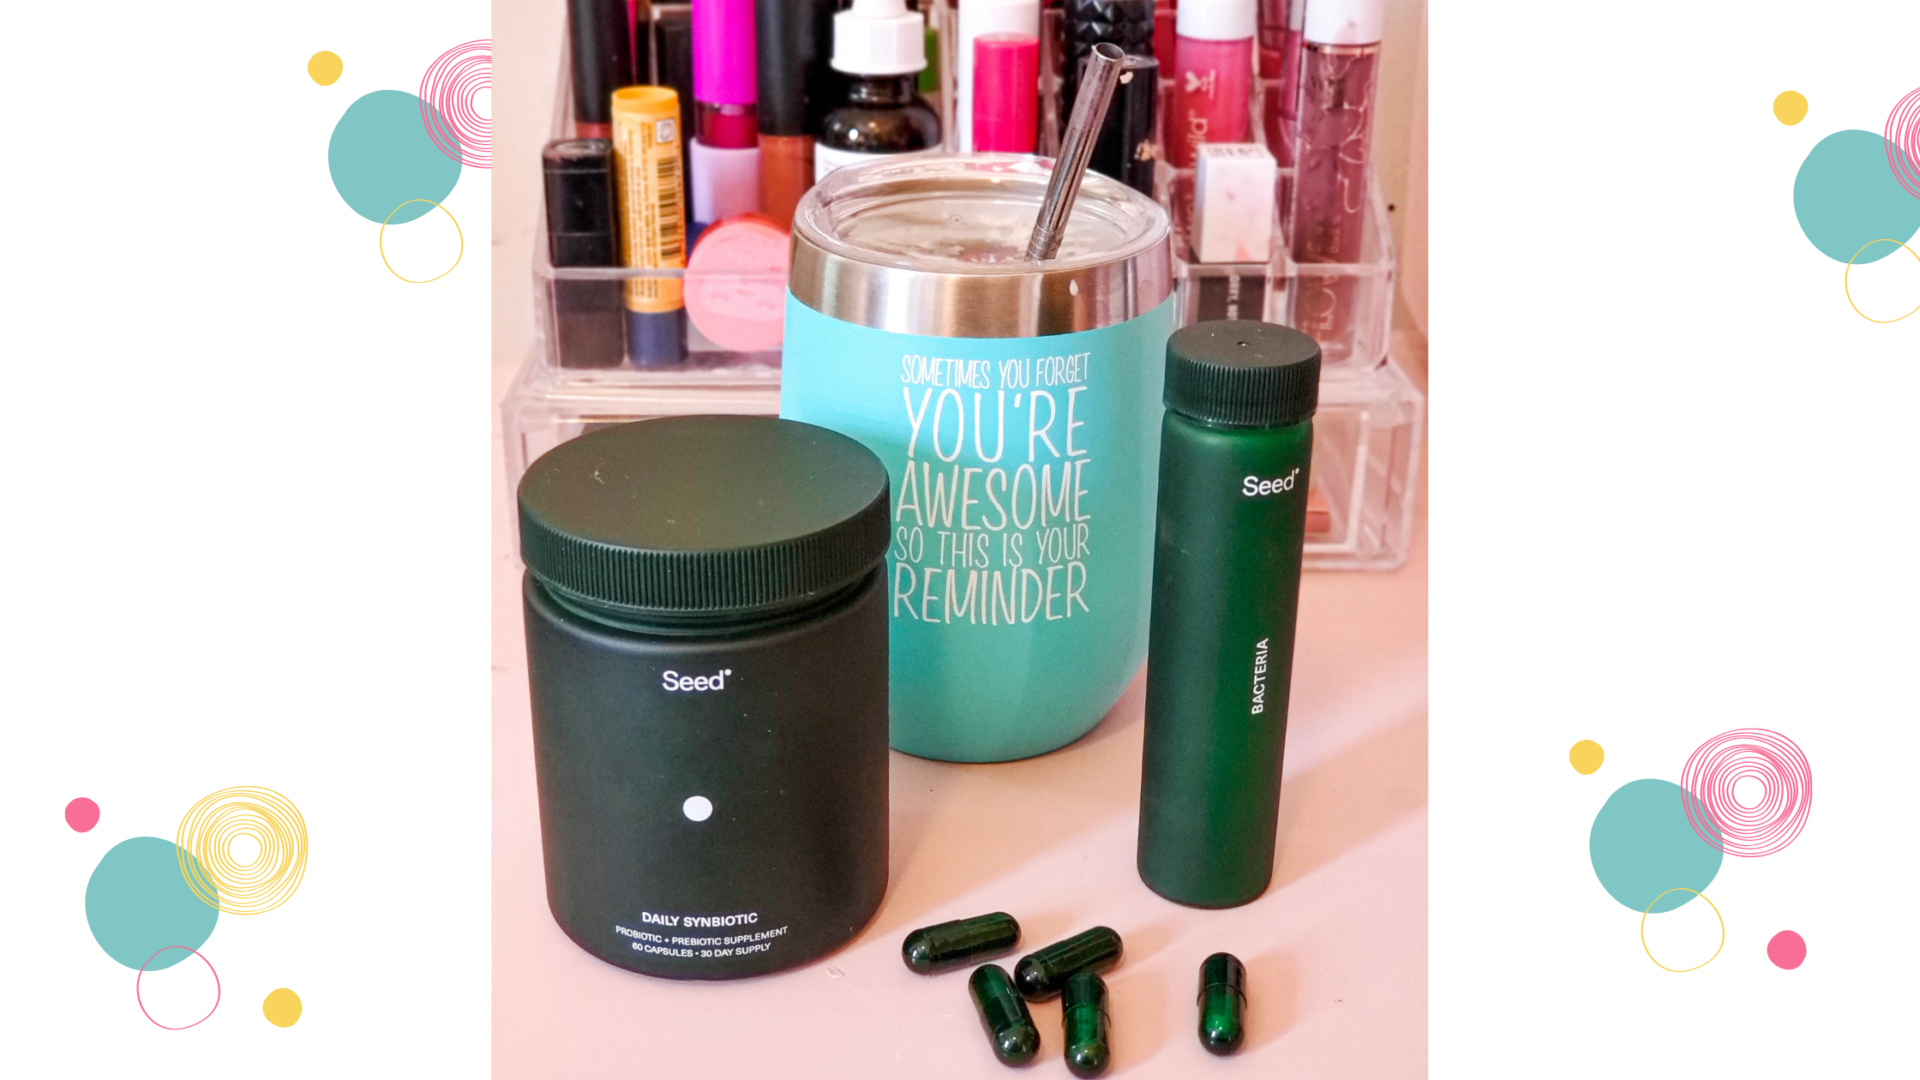 """Green Seed Probiotic containers sit on a pink cart in front of a tumber that reads """"Sometimes you forget you're awesome, so this is your reminder"""" and various makeup in an acrylic organizer."""